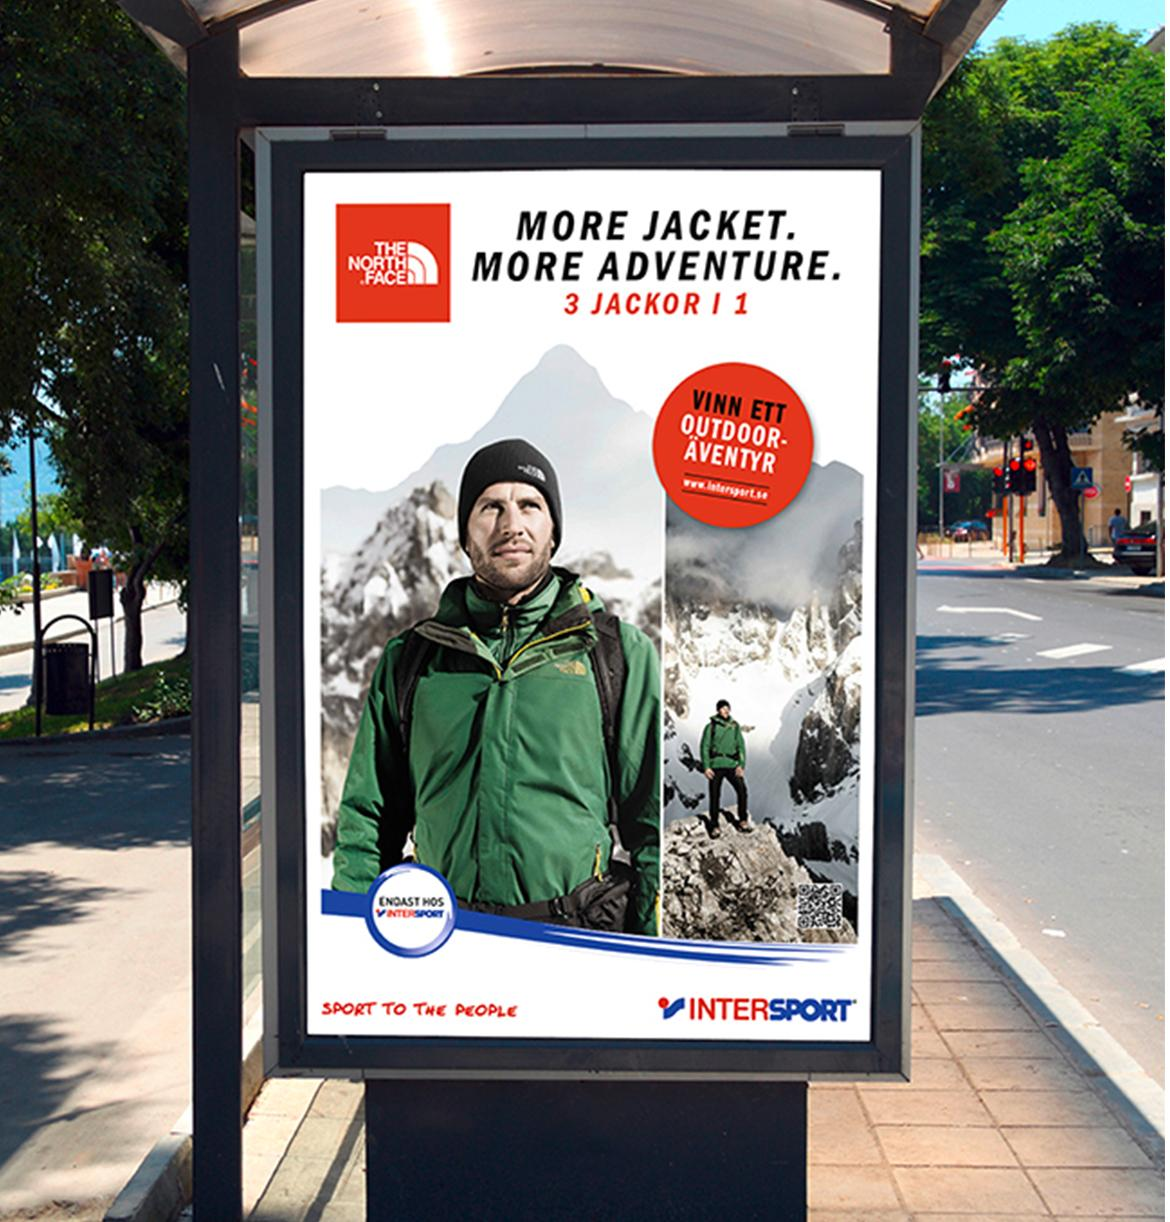 TNF More Jacket. More Adventure. campaign